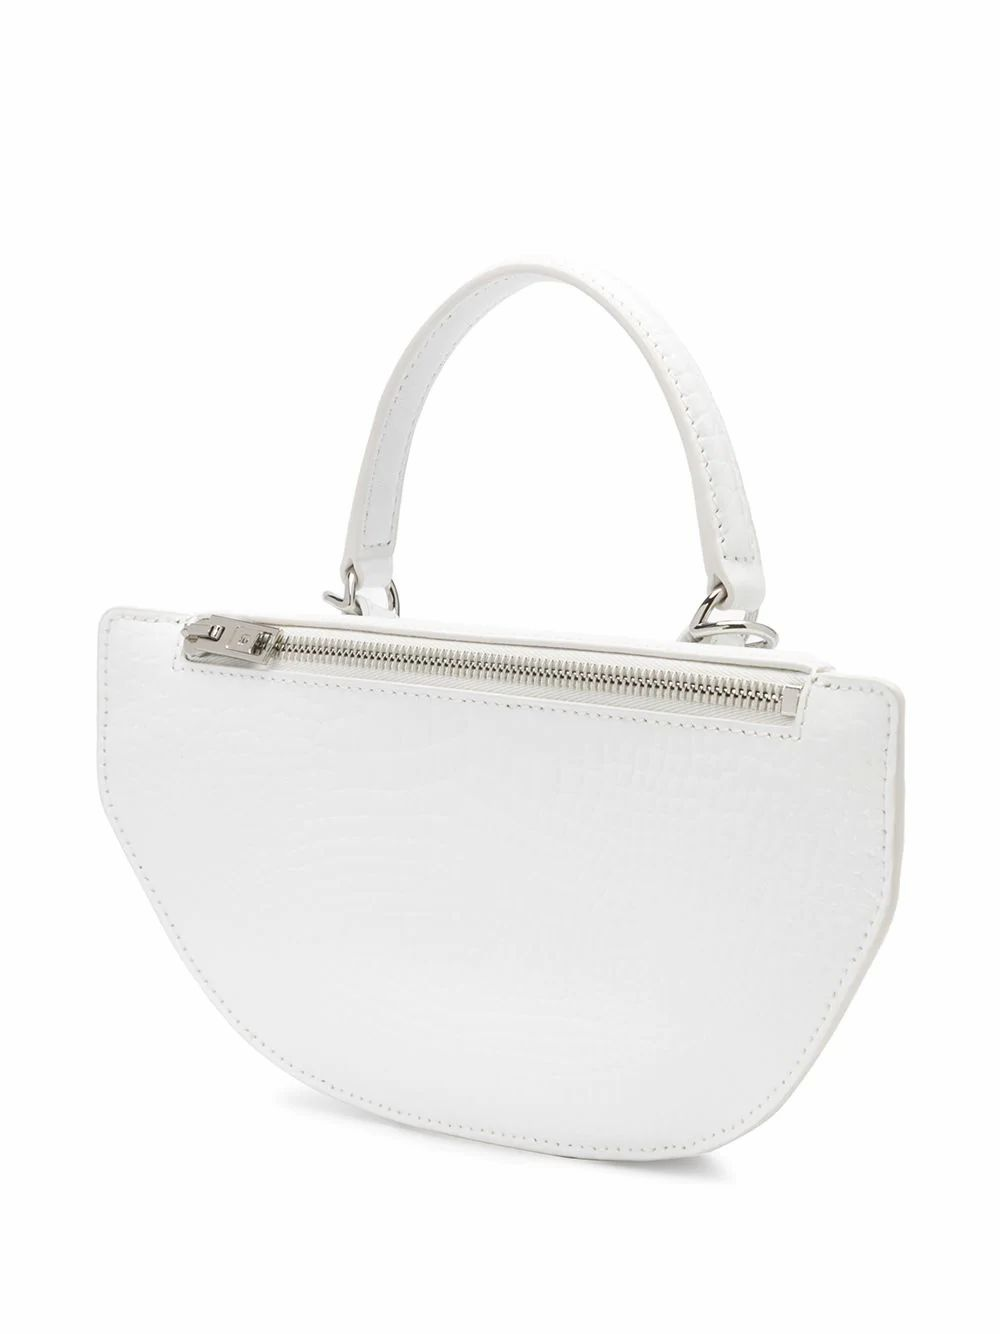 ALEXANDER WANG WOMEN'S 20C120R148100 WHITE LEATHER HANDBAG